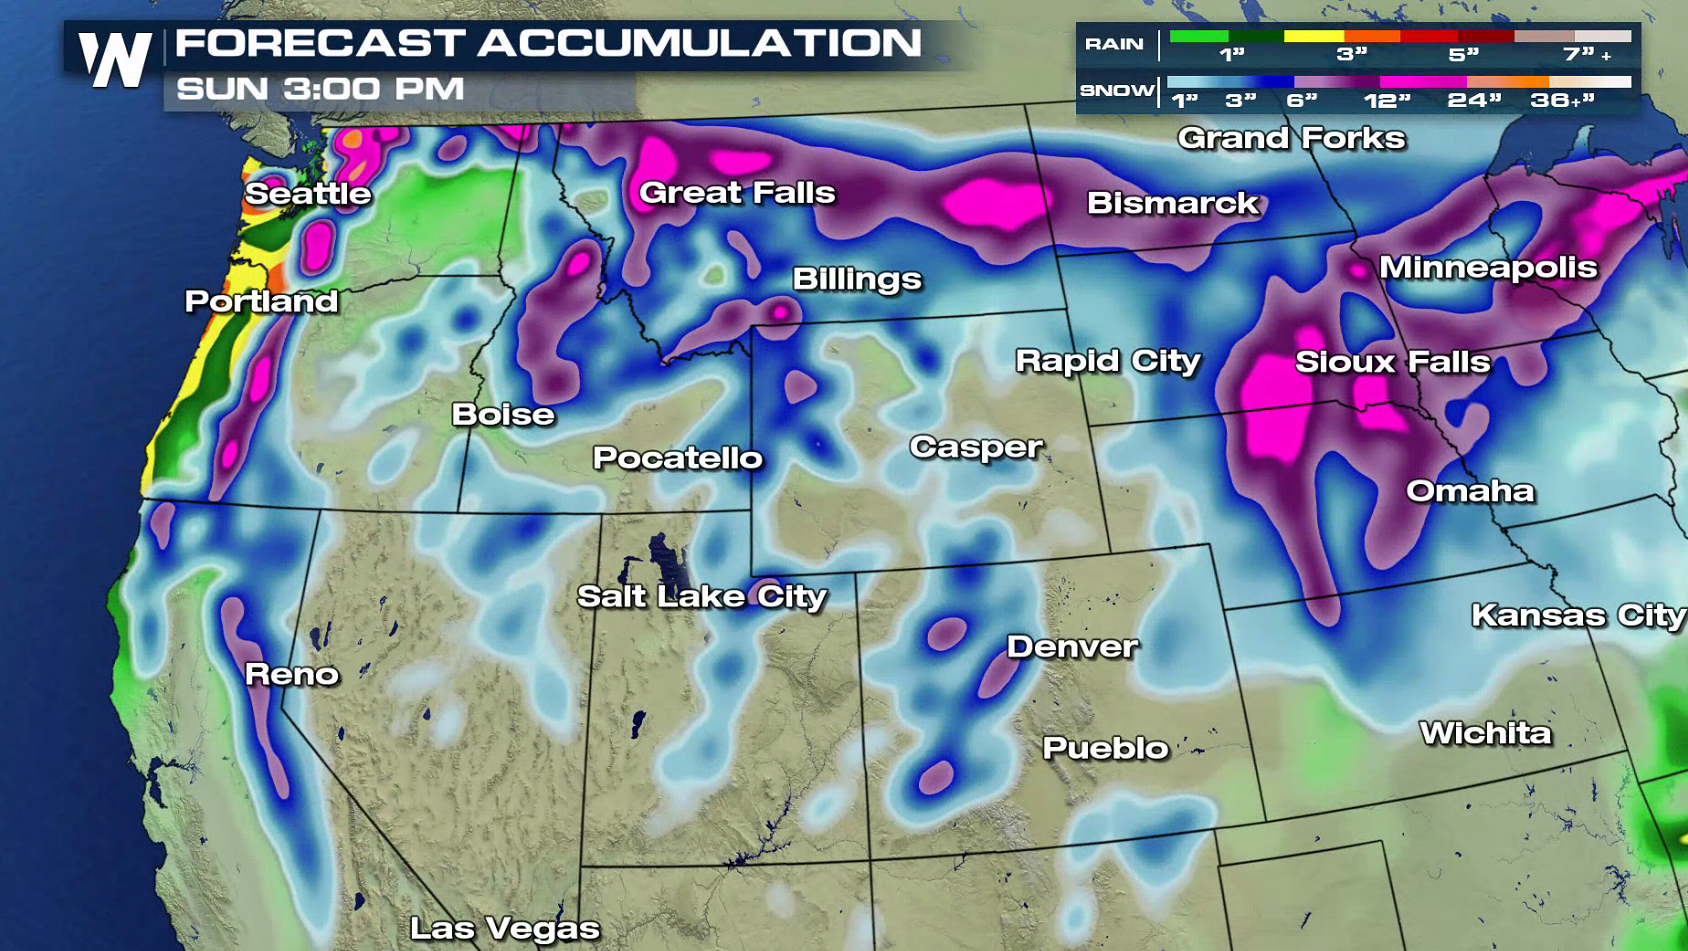 Another Significant Storm to Bring Heavy Snow to the West